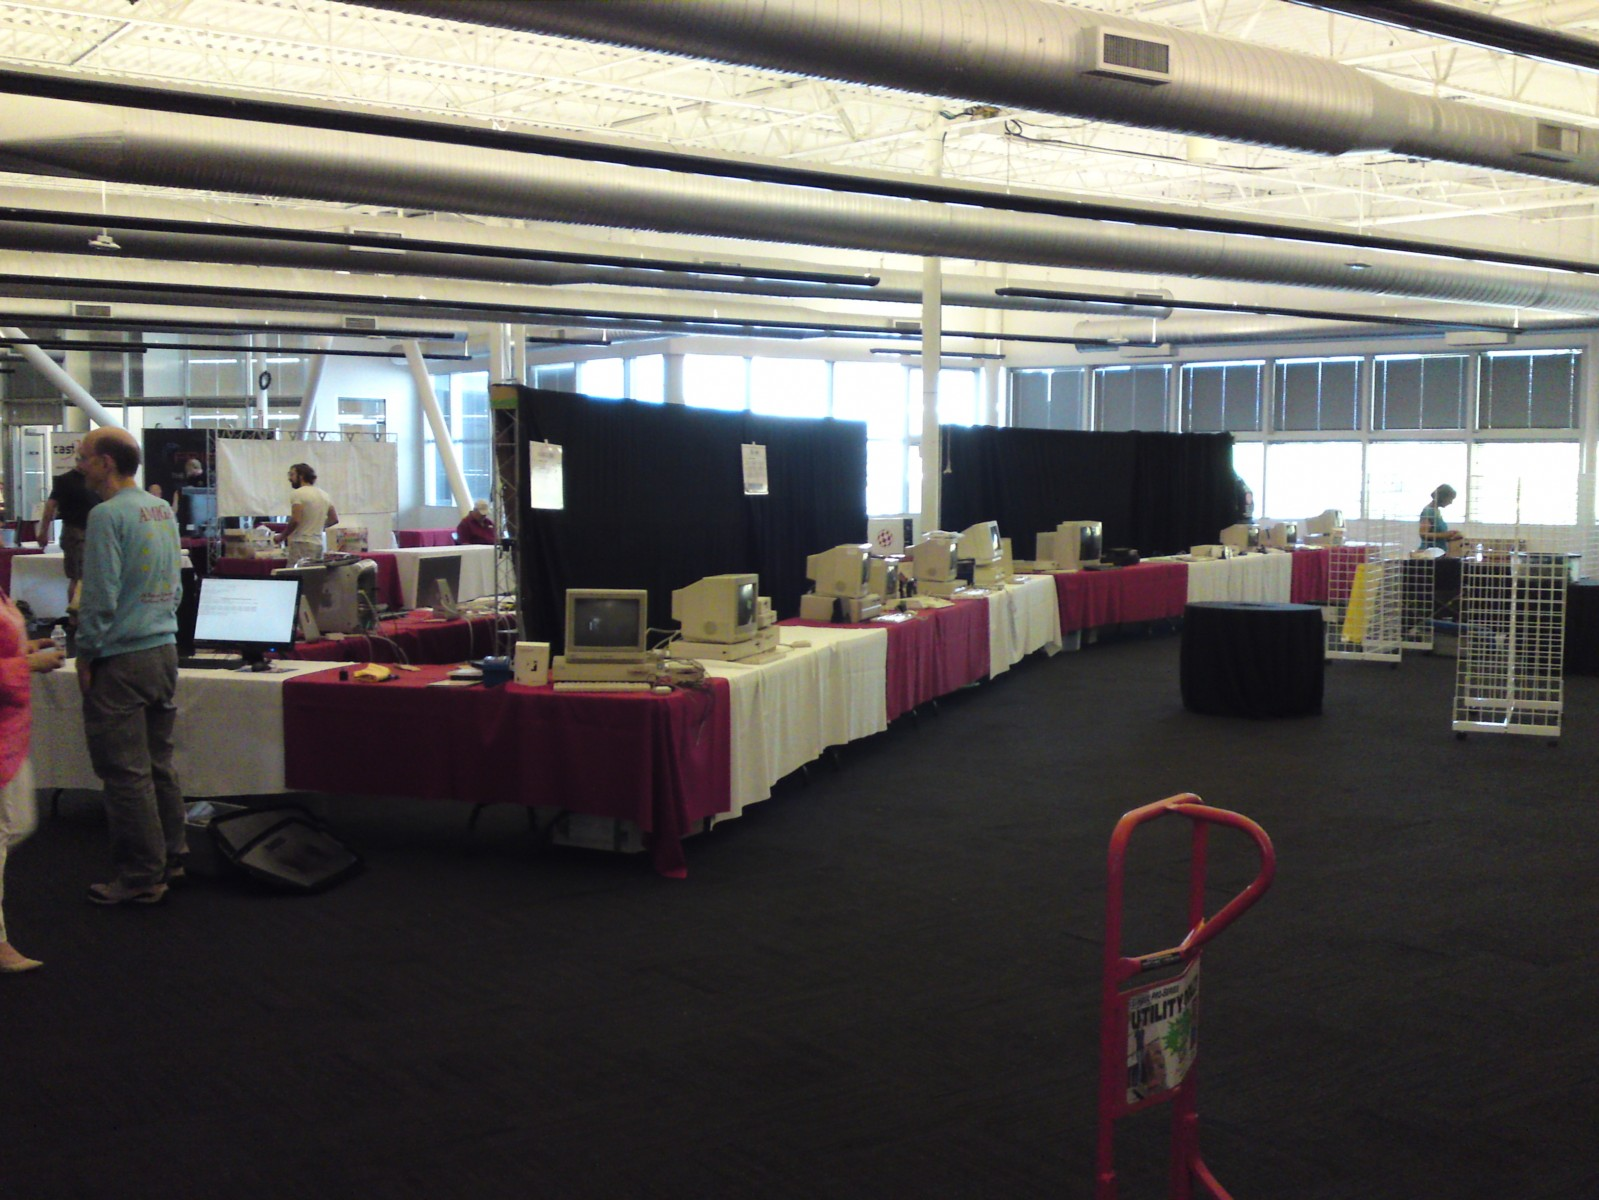 Exhibit hall from the entrance (just before open)